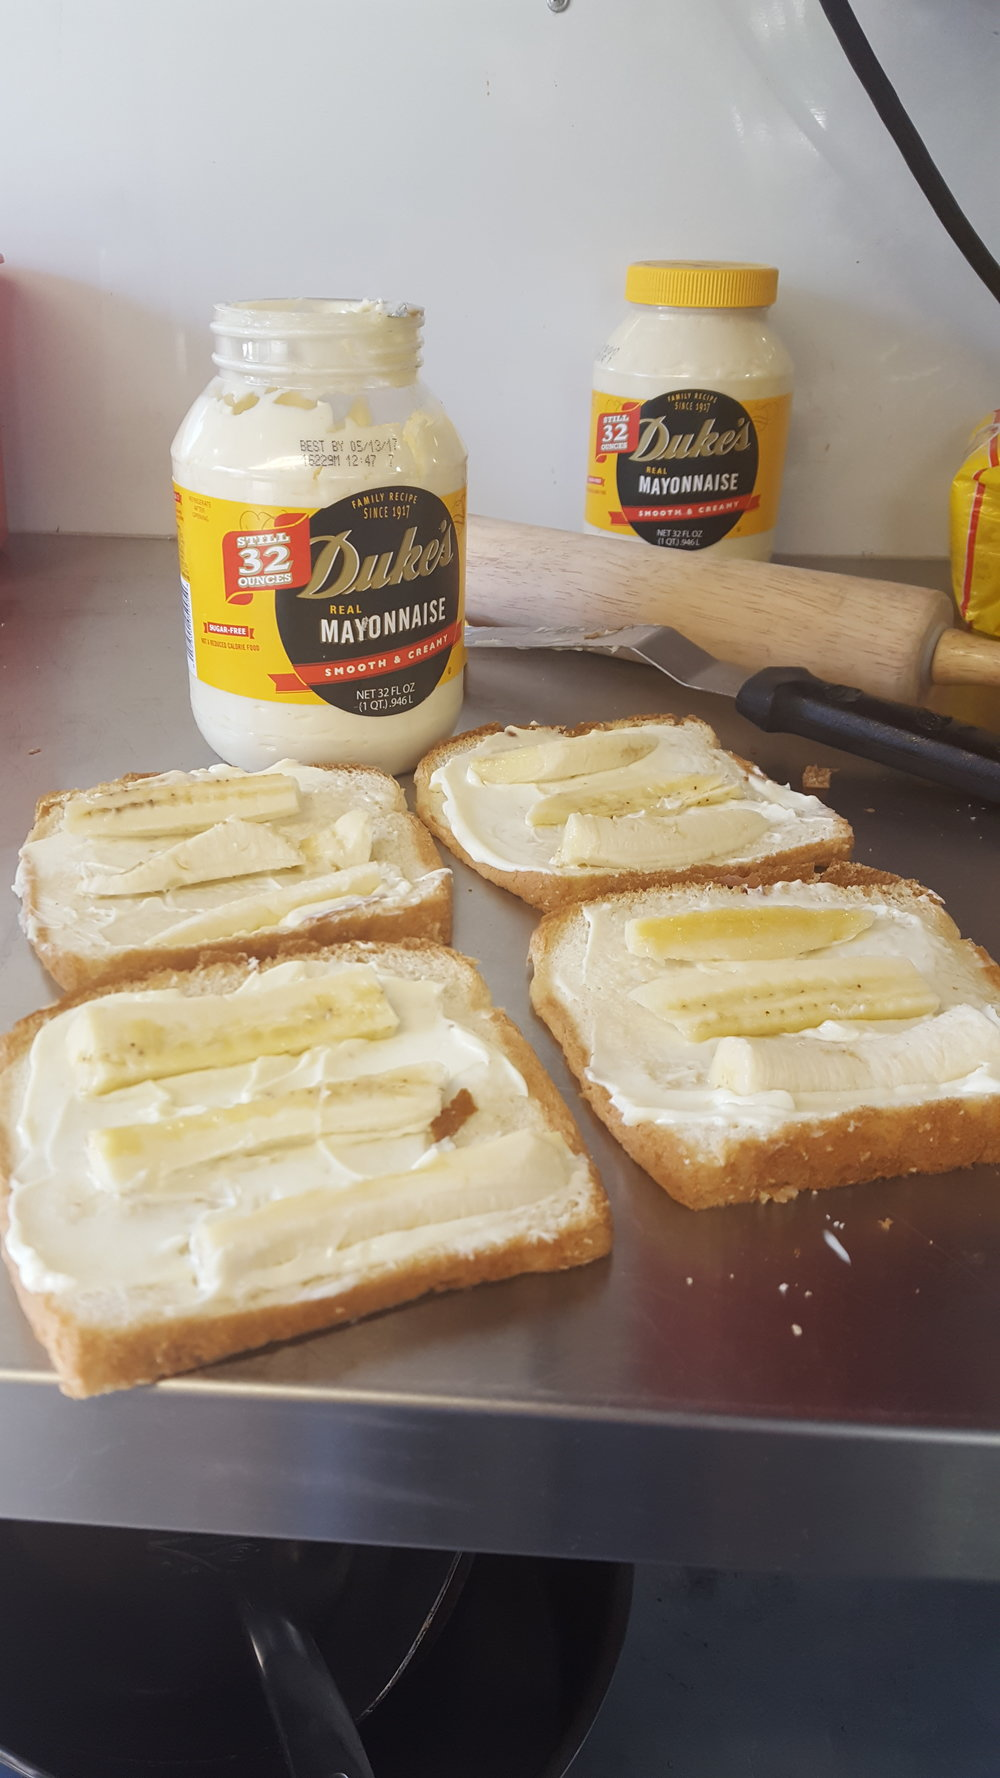 Duke Mayo and Banana Sandwiches – we're taking our Duke's with us!